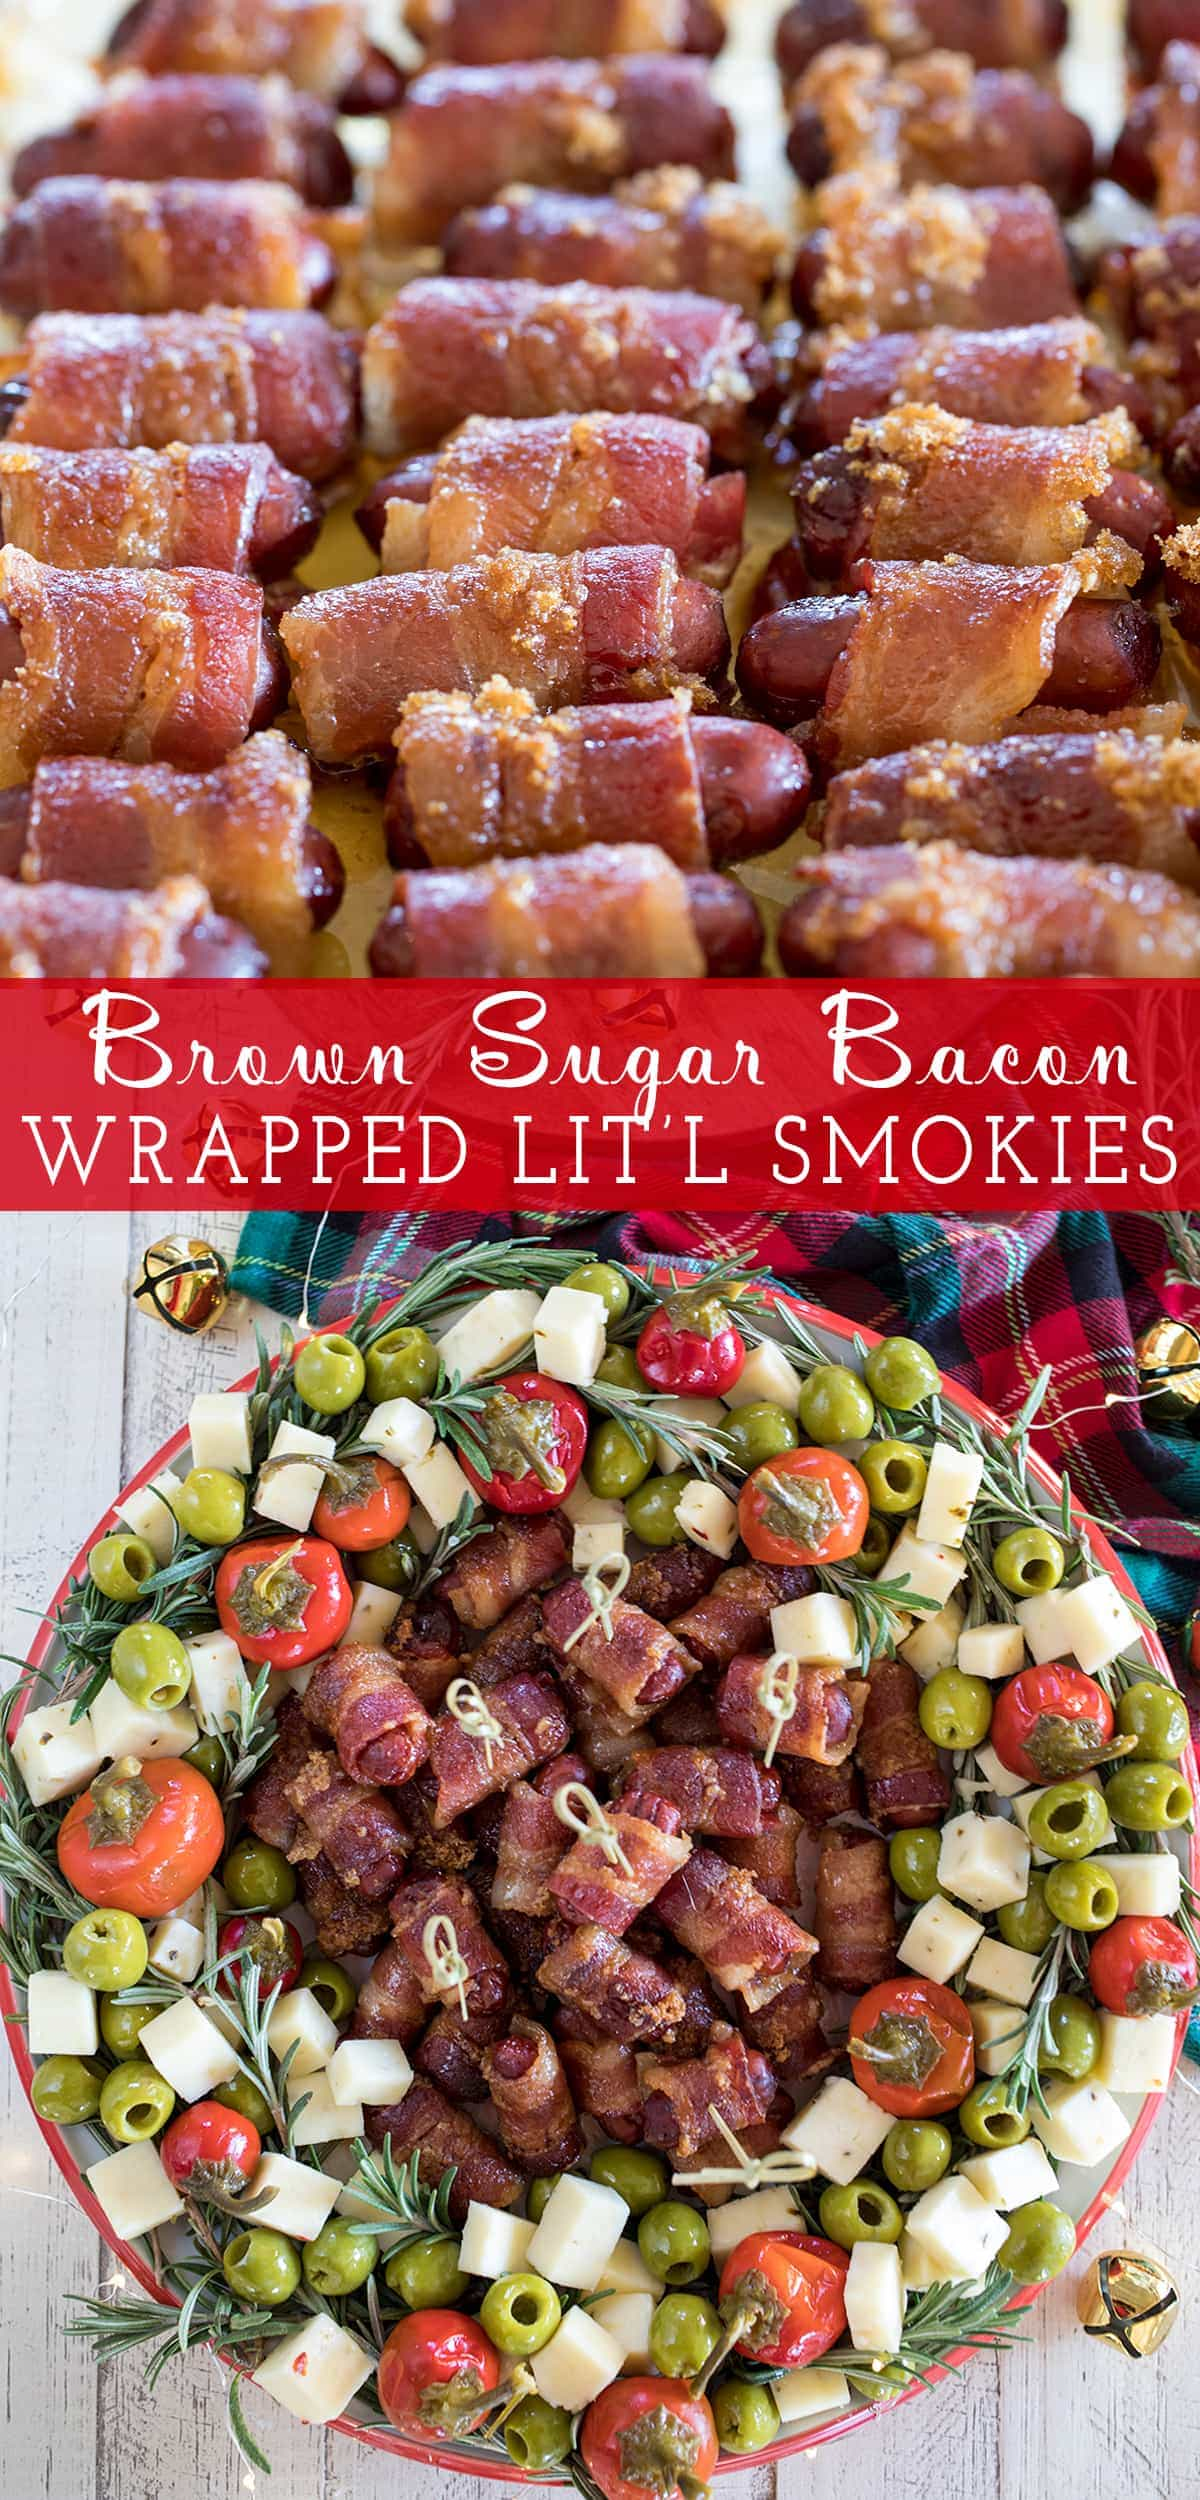 Brown Sugar Bacon Wrapped Little Smokie's